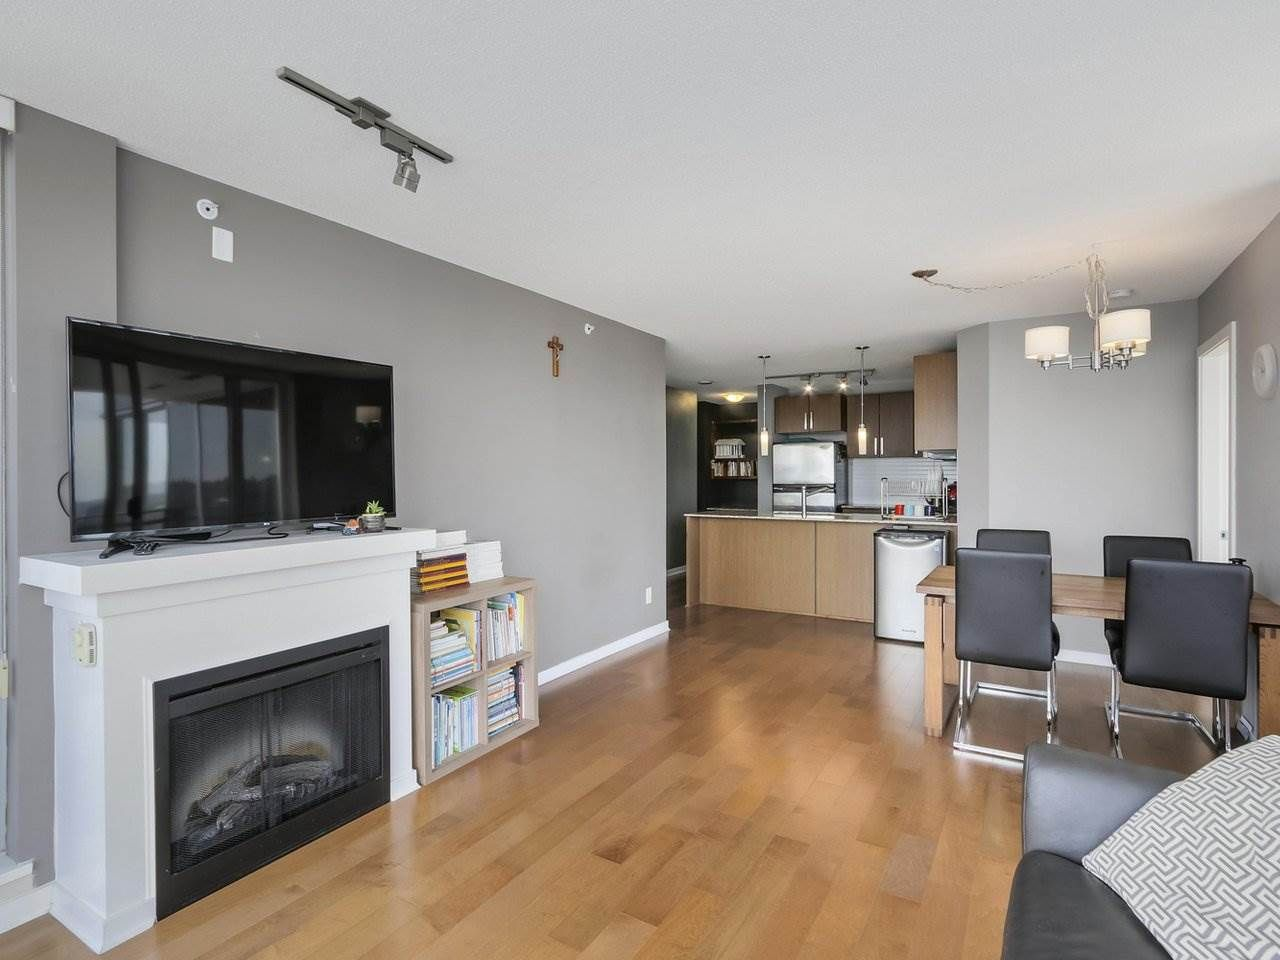 """Main Photo: 705 9888 CAMERON Street in Burnaby: Sullivan Heights Condo for sale in """"SILHOUETTE"""" (Burnaby North)  : MLS®# R2272765"""